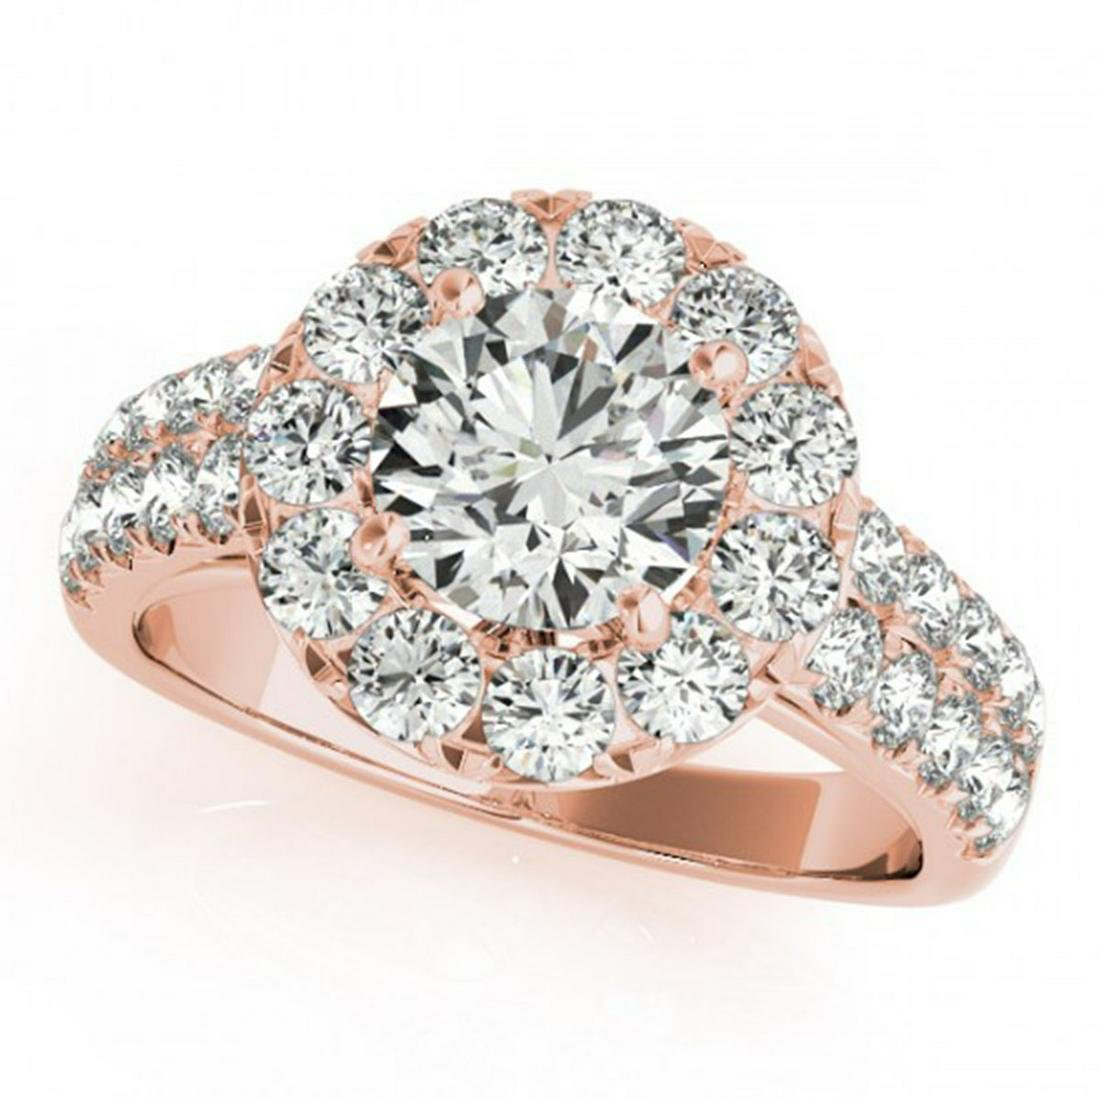 1.75 ctw VS/SI Diamond Solitaire Halo Ring 14K Rose